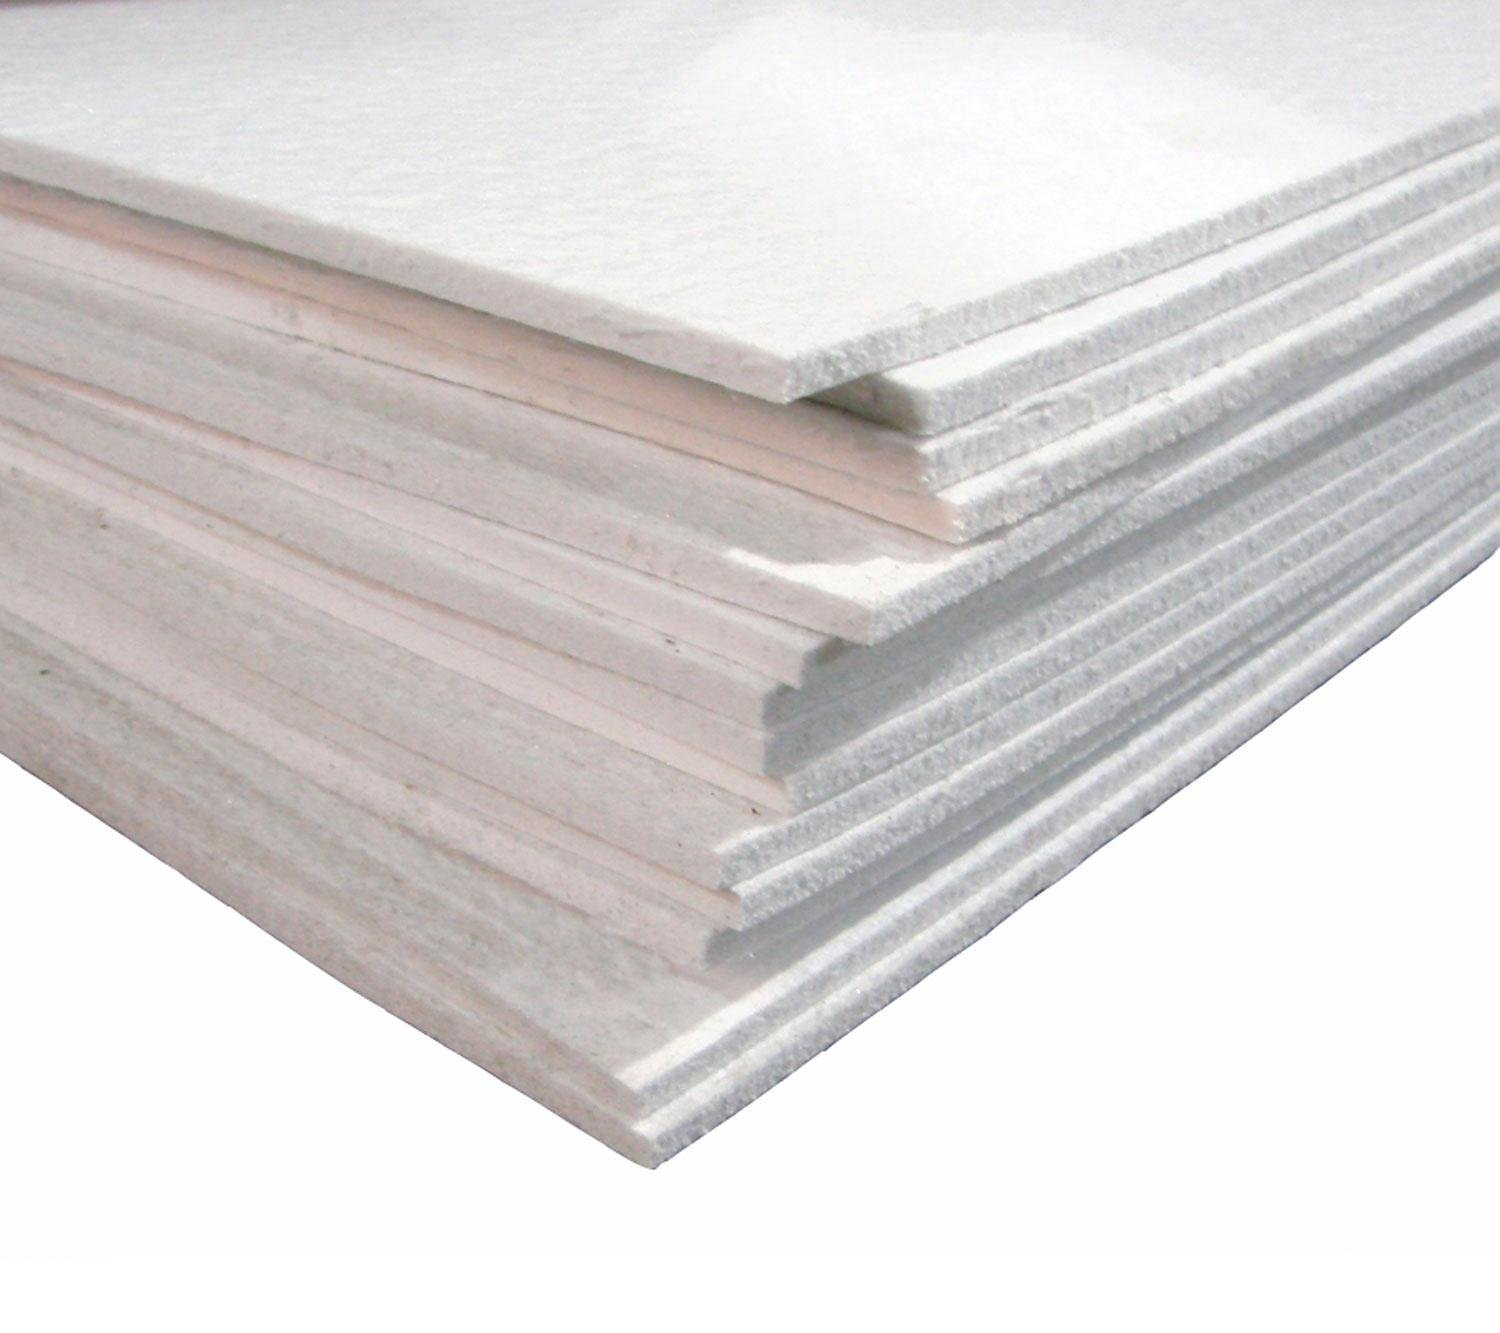 8'' x 12'' Reusable 1/4'' Soft Fiber Shelf Paper for Glass Fusing and Slumping by Generic